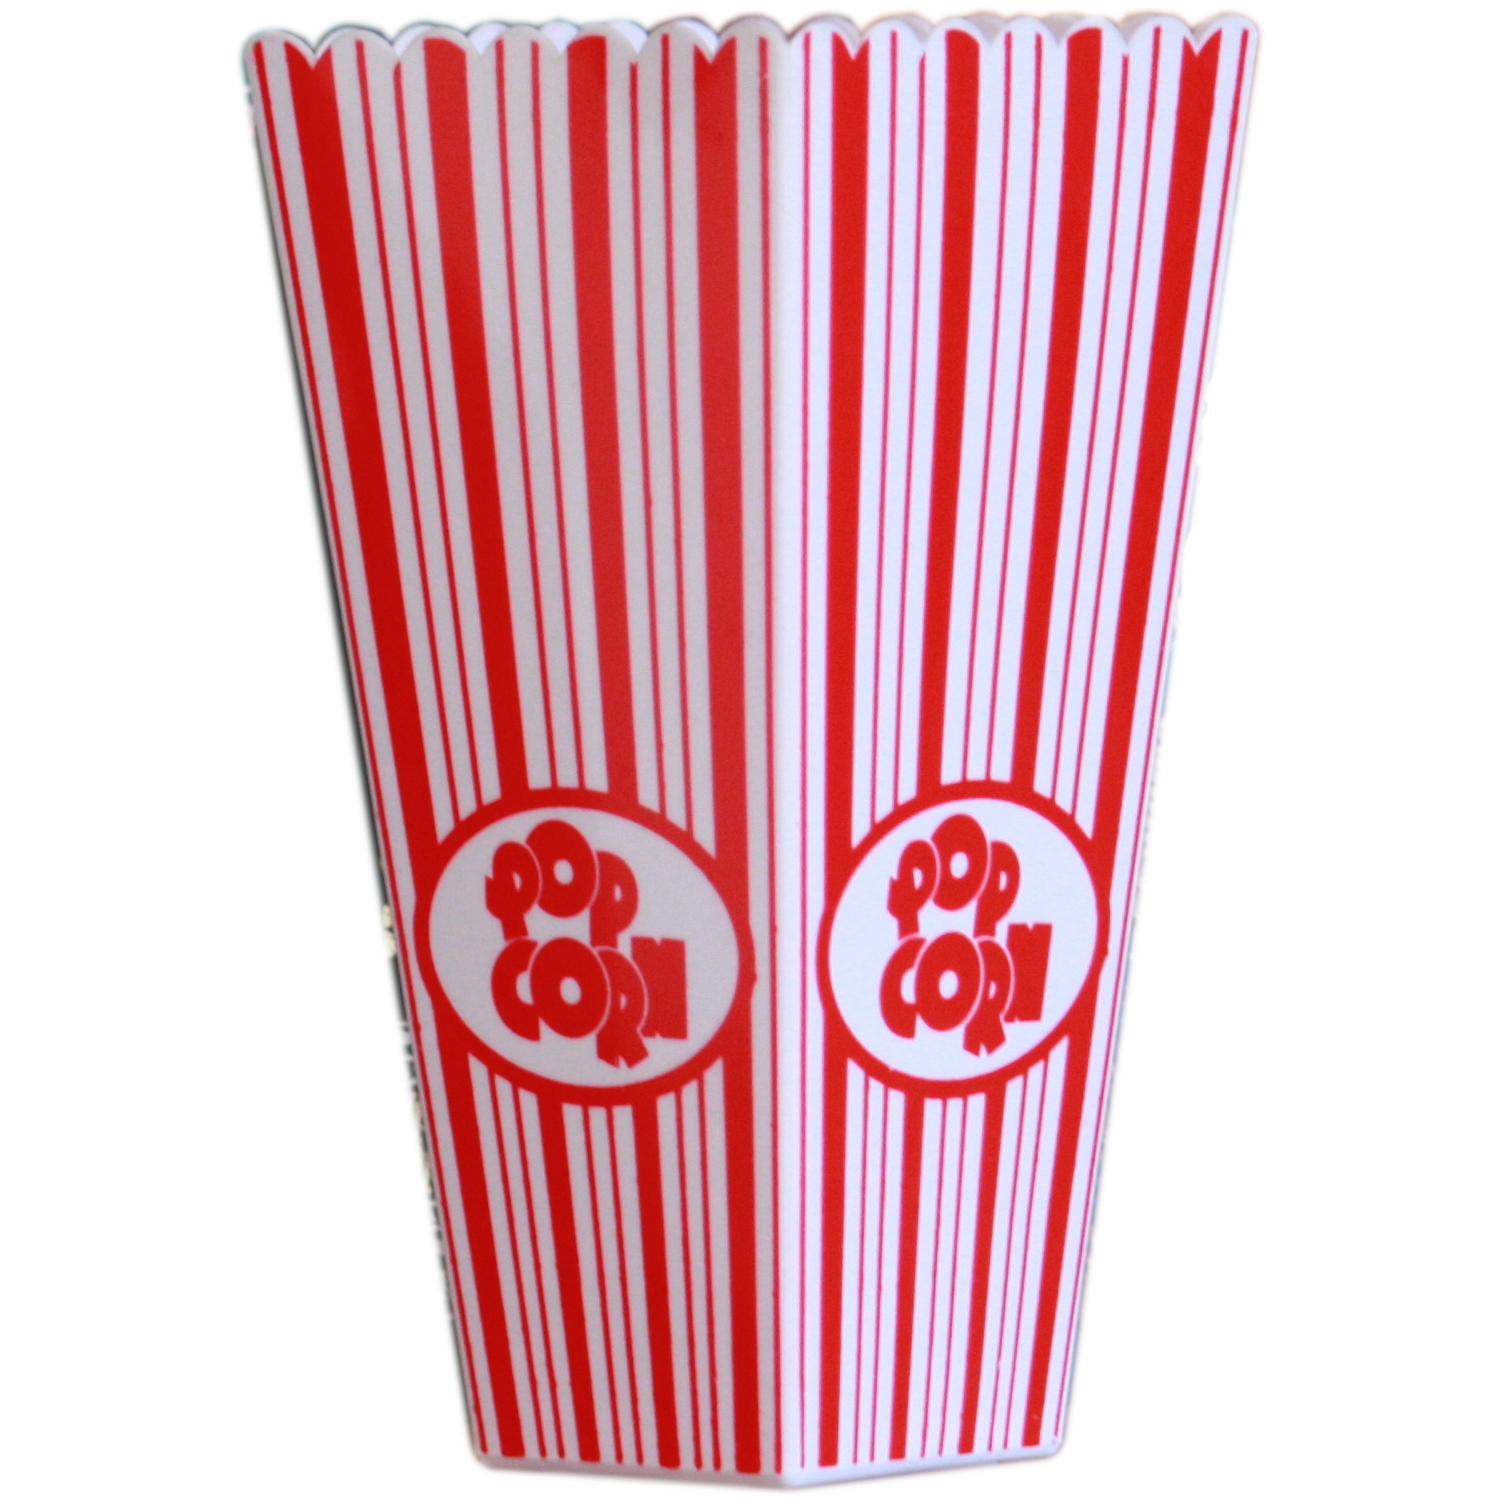 Striped Plastic Popcorn Holder Tub Blendboutique